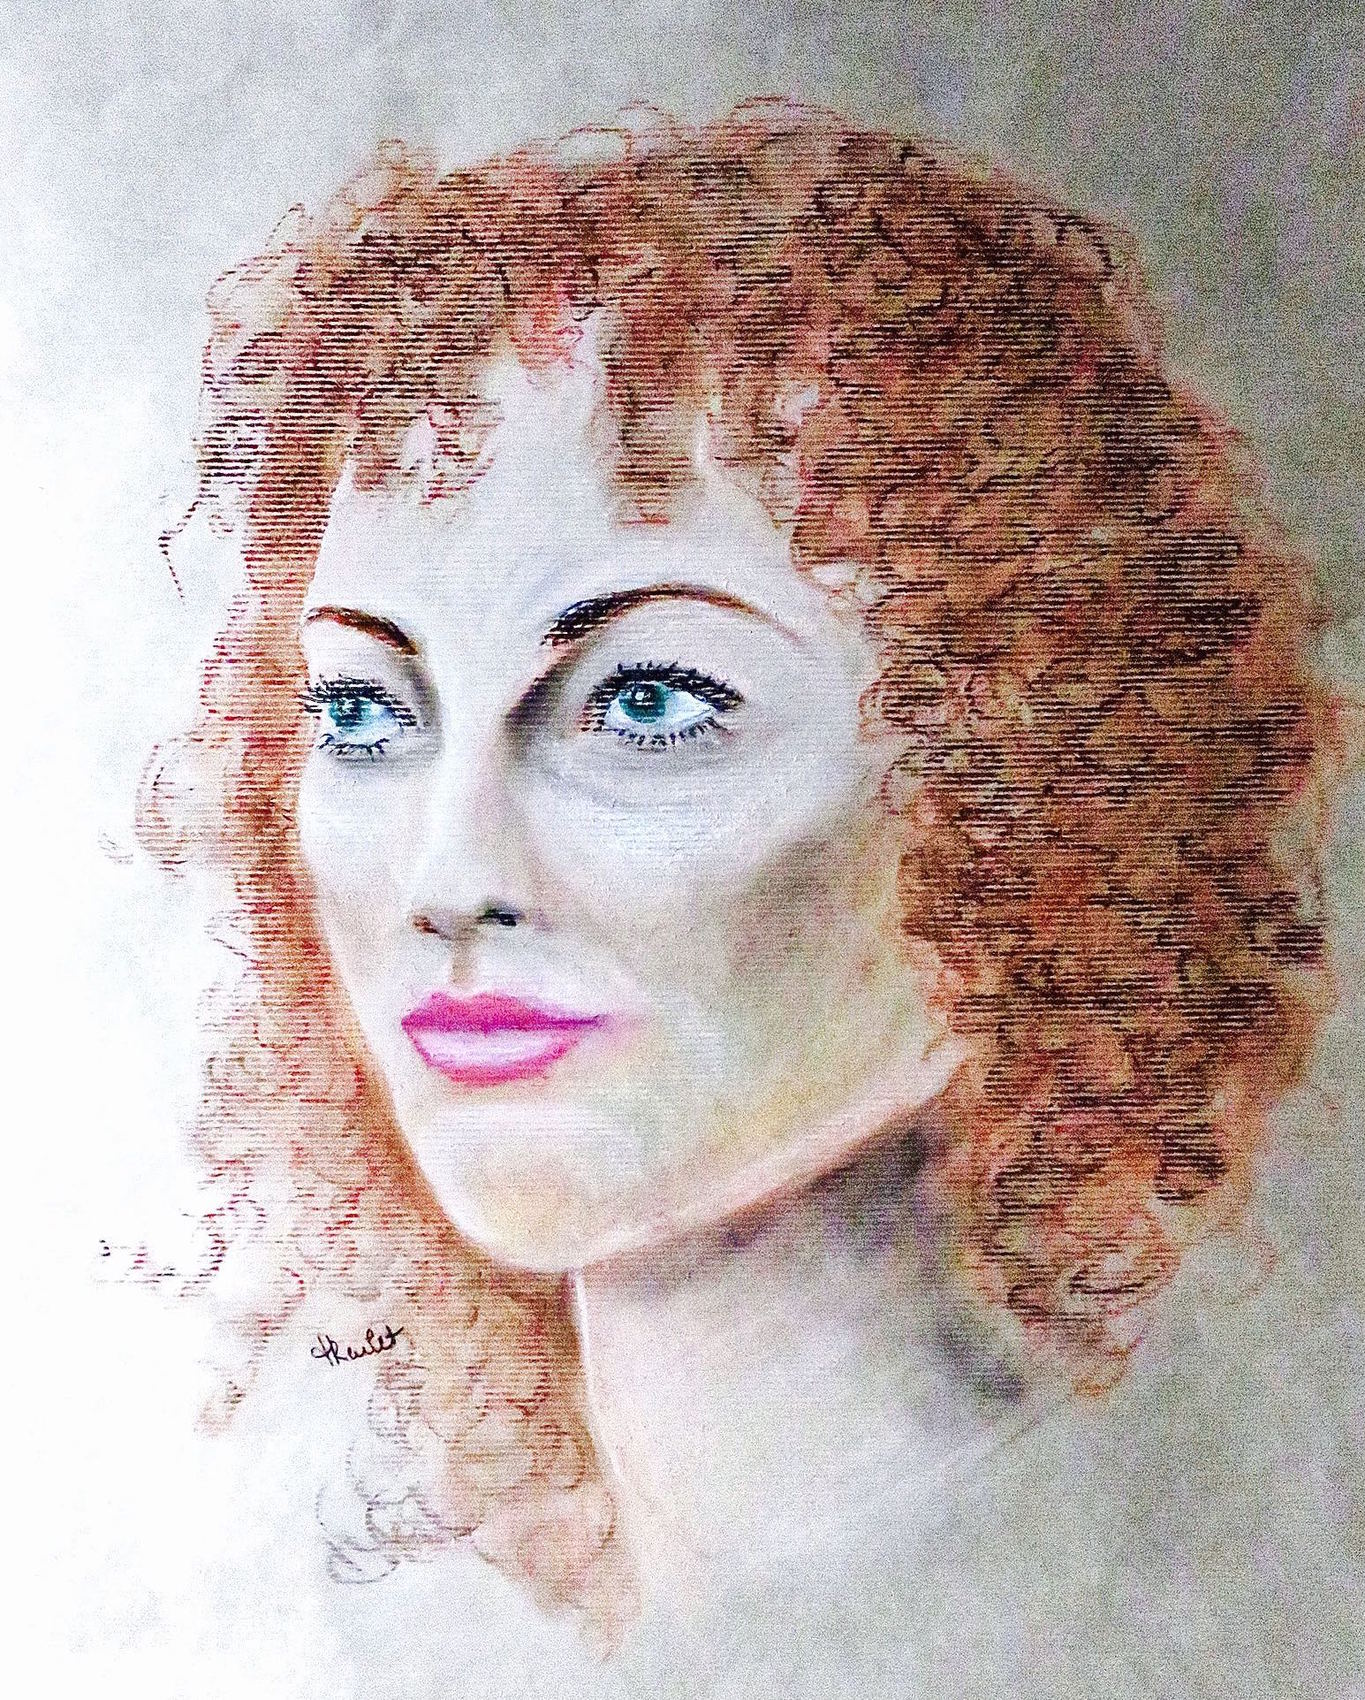 dessin portrait femme aux cheveux auburn / drawing : a woman with